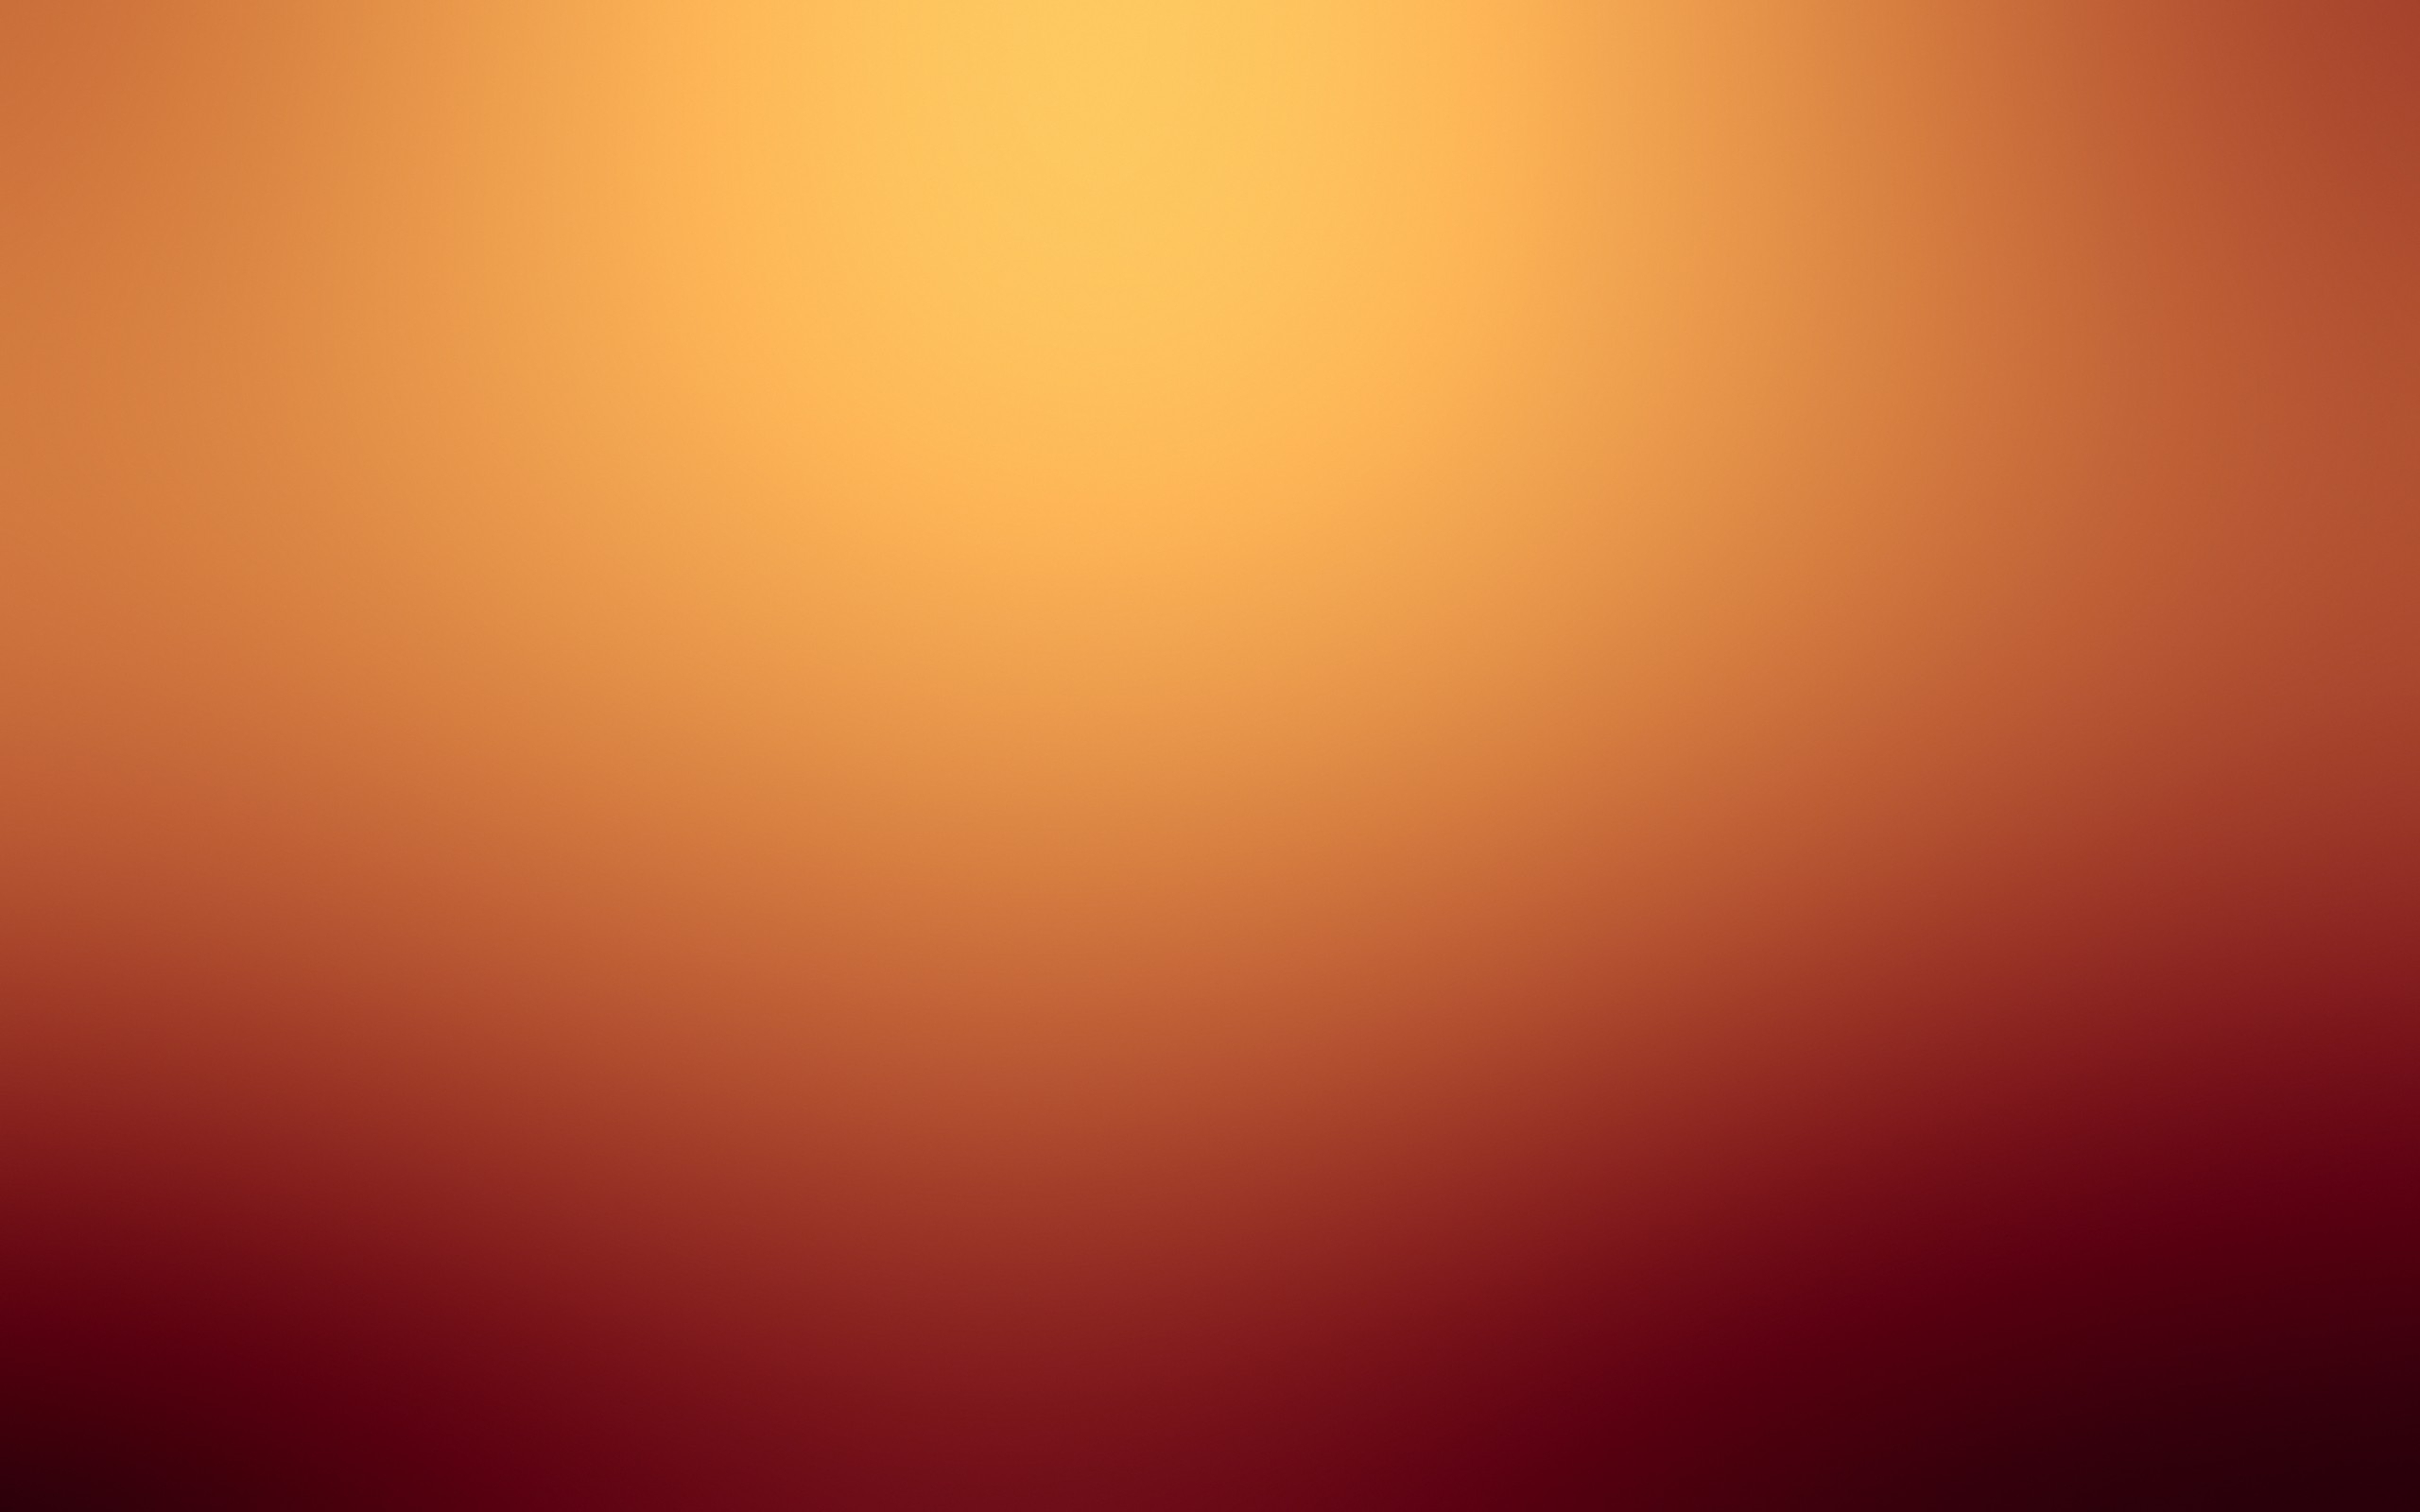 backgrounds orange wallpapers walls 2560x1600 2560x1600